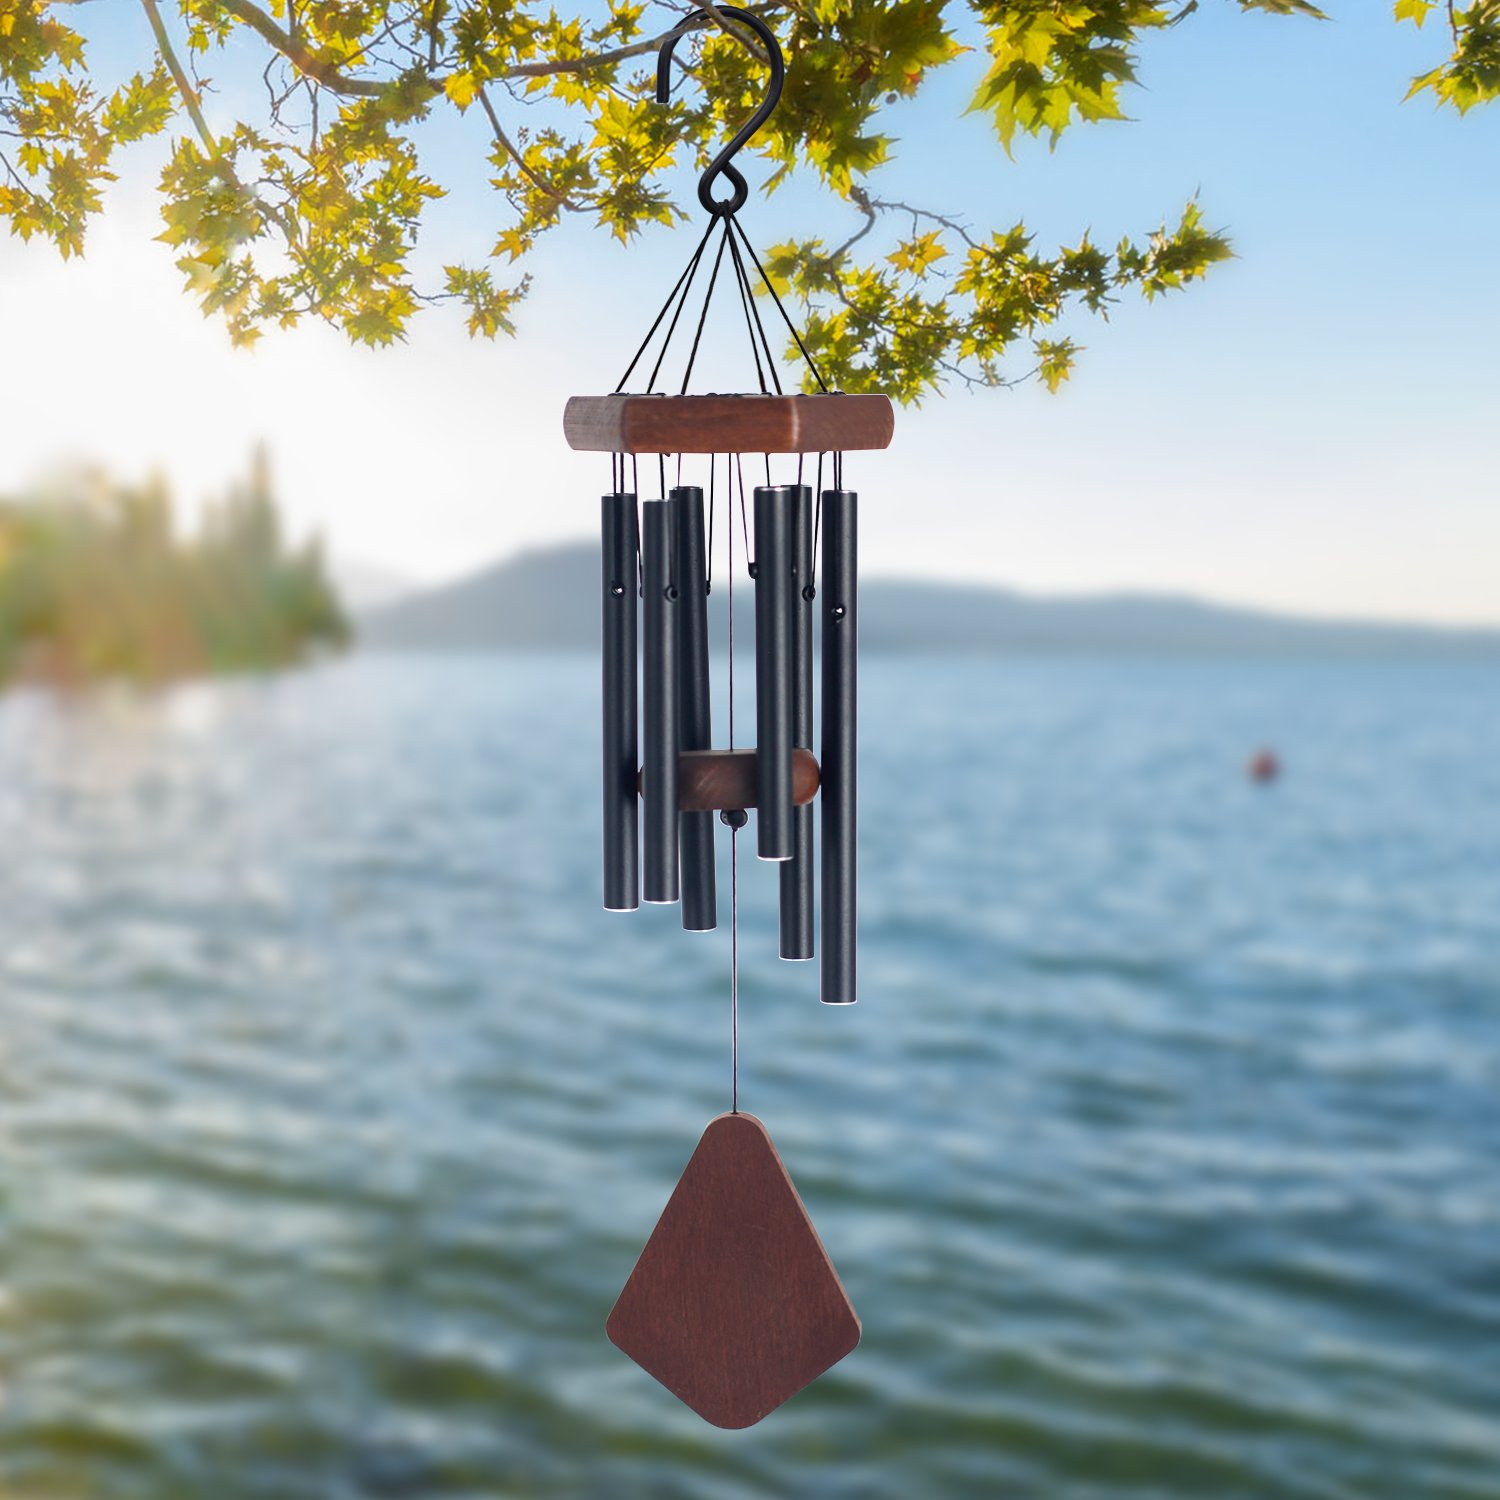 Sinfinate Wind Chimes Outdoor Amazing Grace, Memorial Wind Chimes with 6 Metal Tubes, Beautiful Garden Wind Chimes for Patio and Indoor Décor (Matte Black)